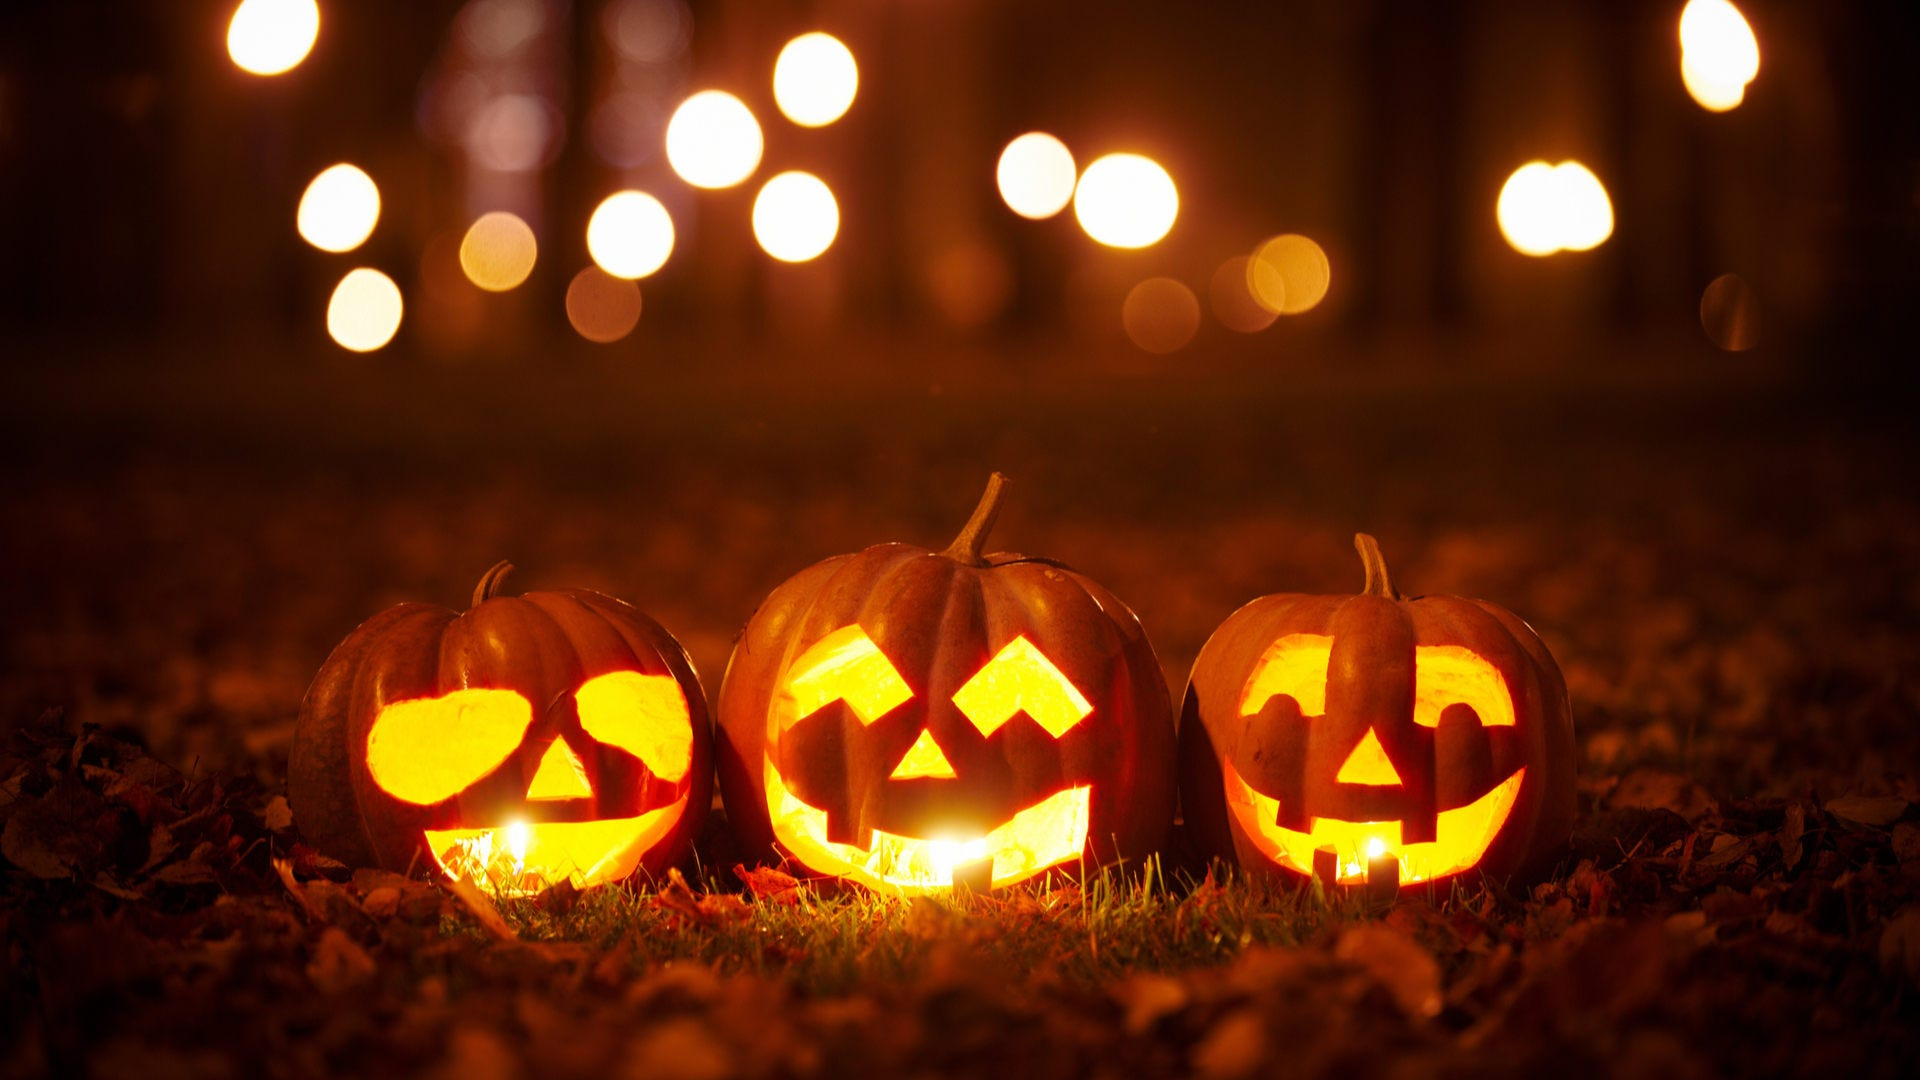 Some carved pumpkins sitting on grass at night.